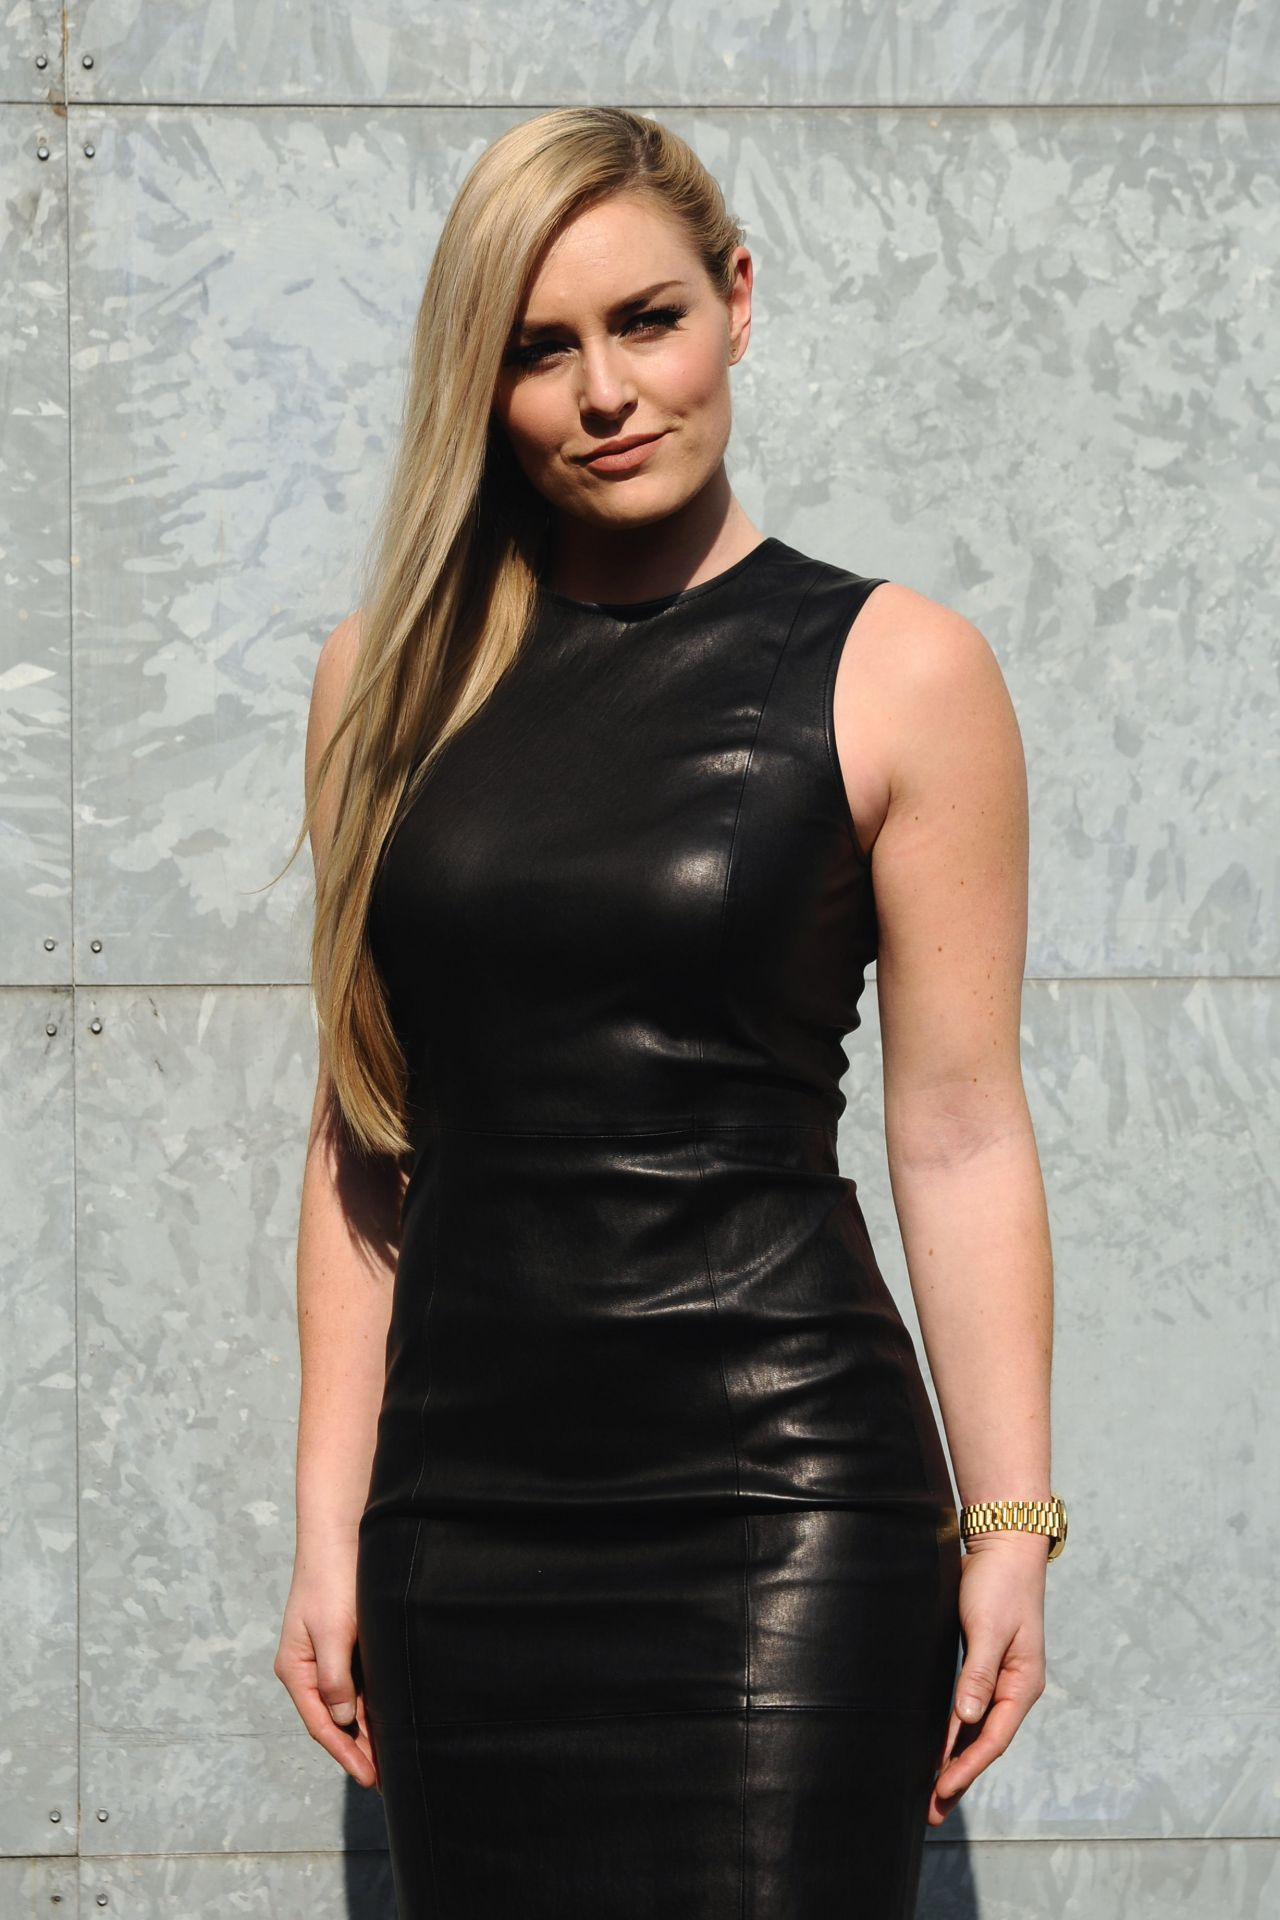 Lindsey Vonn Milan Fashion Week. Sexy black leather dress